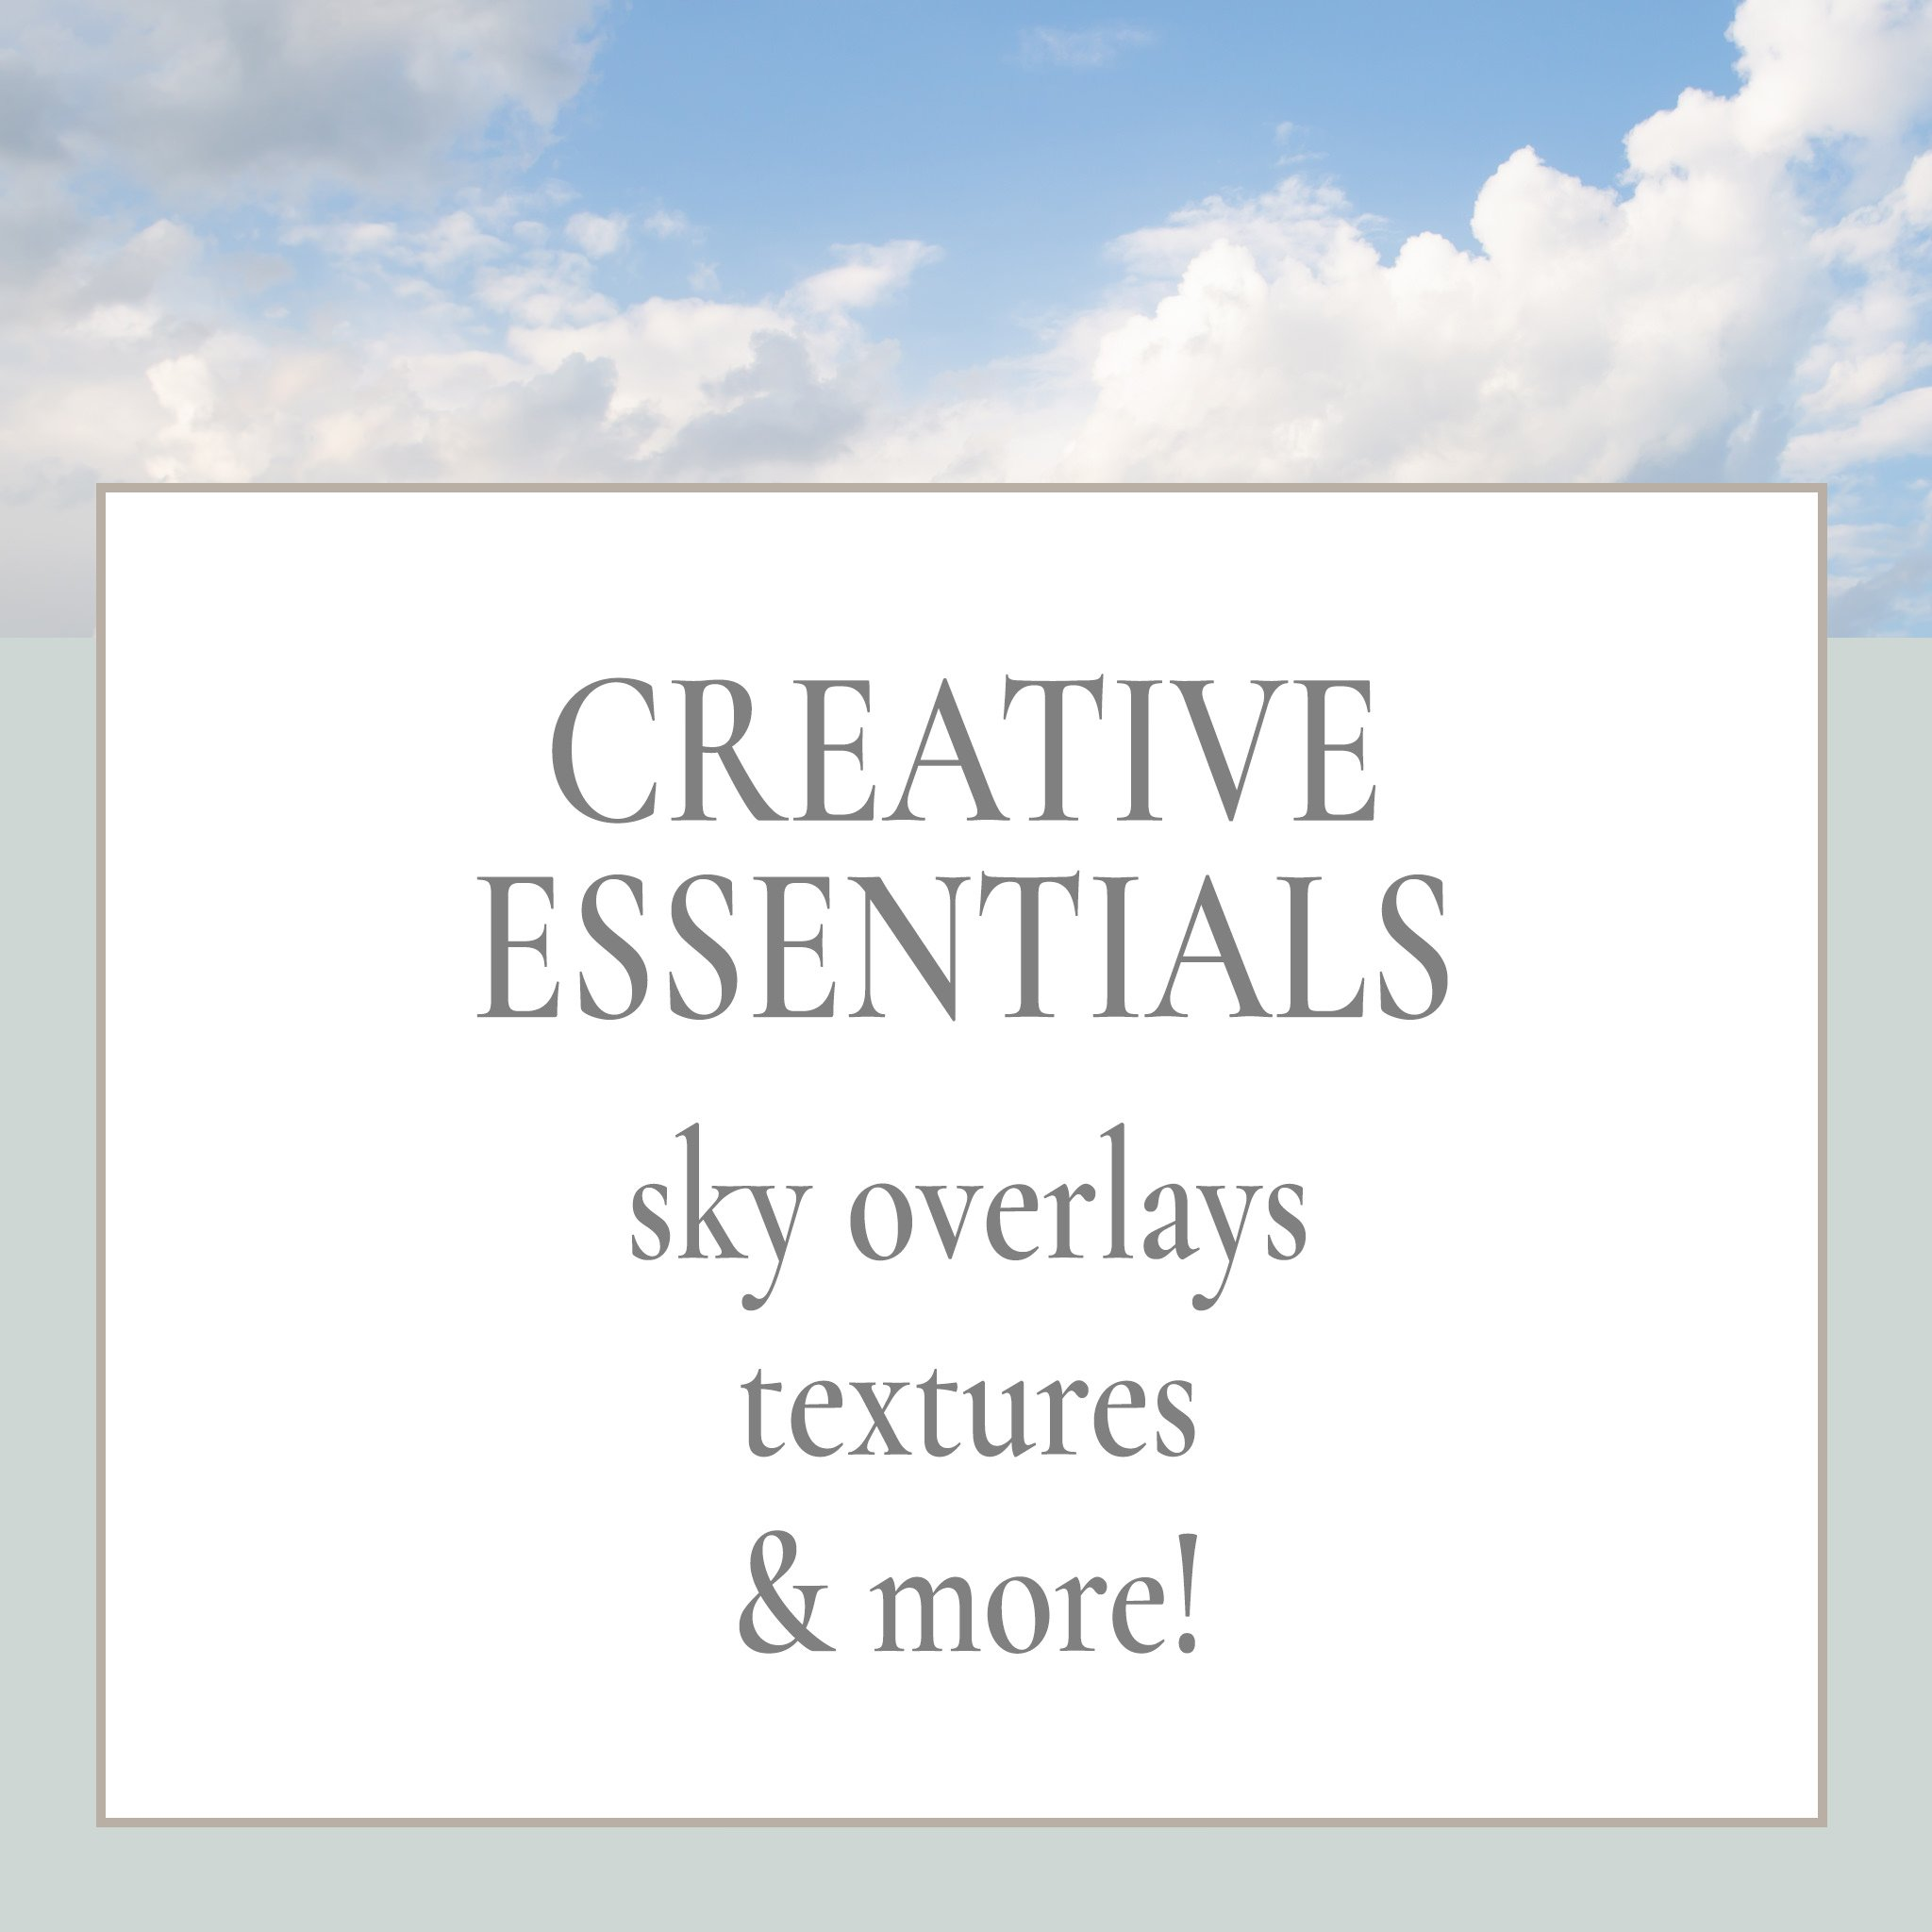 click here to shop for photoshop sky overlays, textures, light overlays, flares and more from the alana lee photography store